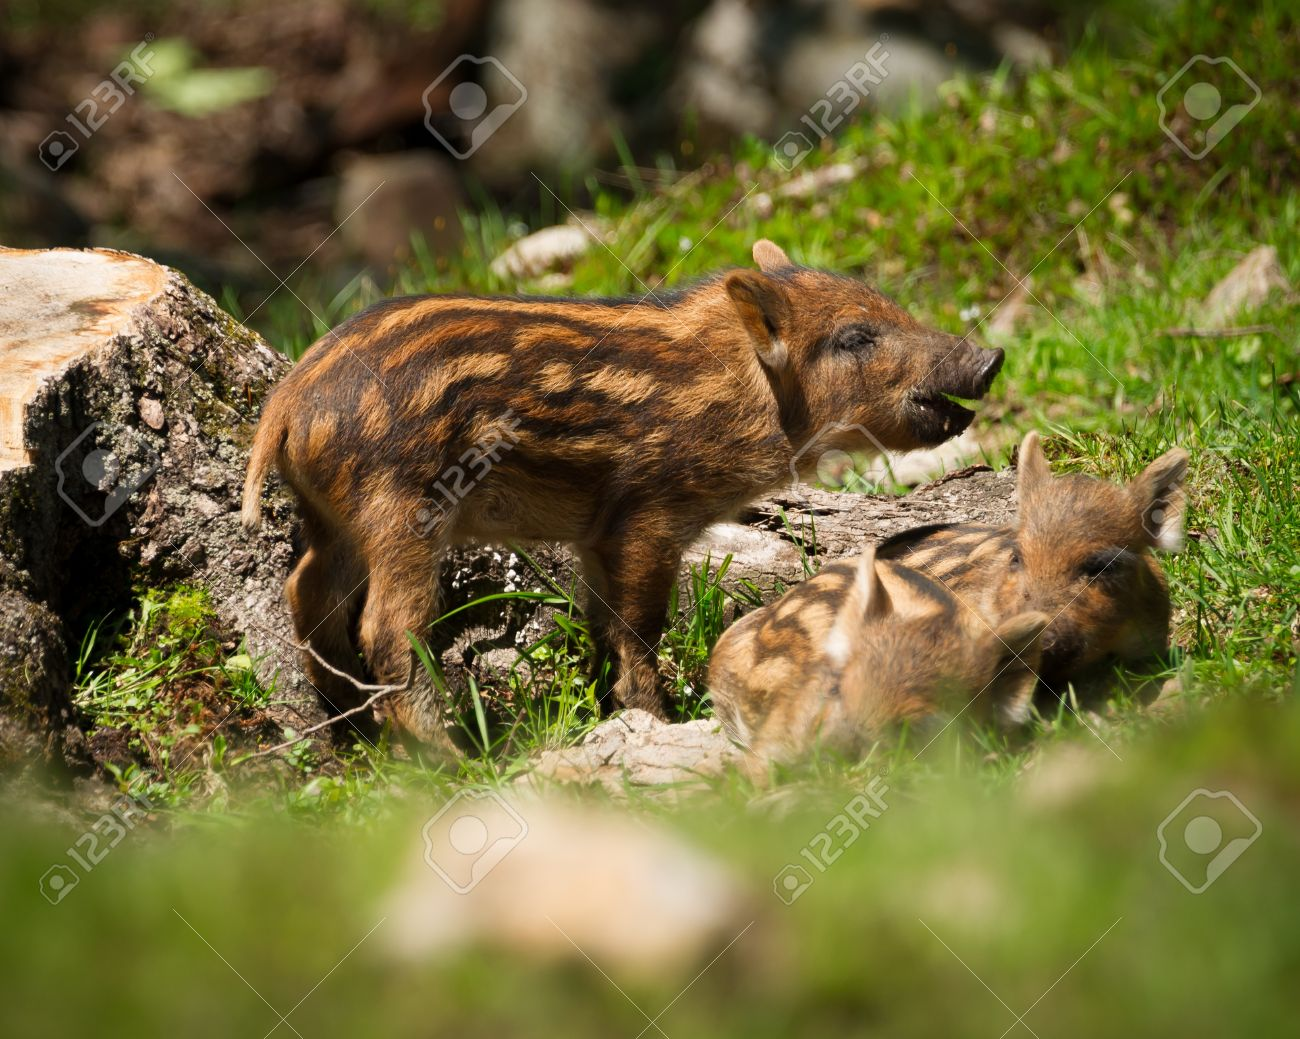 A group of baby wild boar or wild pigs (Sus scrofa) in the green grass of the summer sun. - 20012971